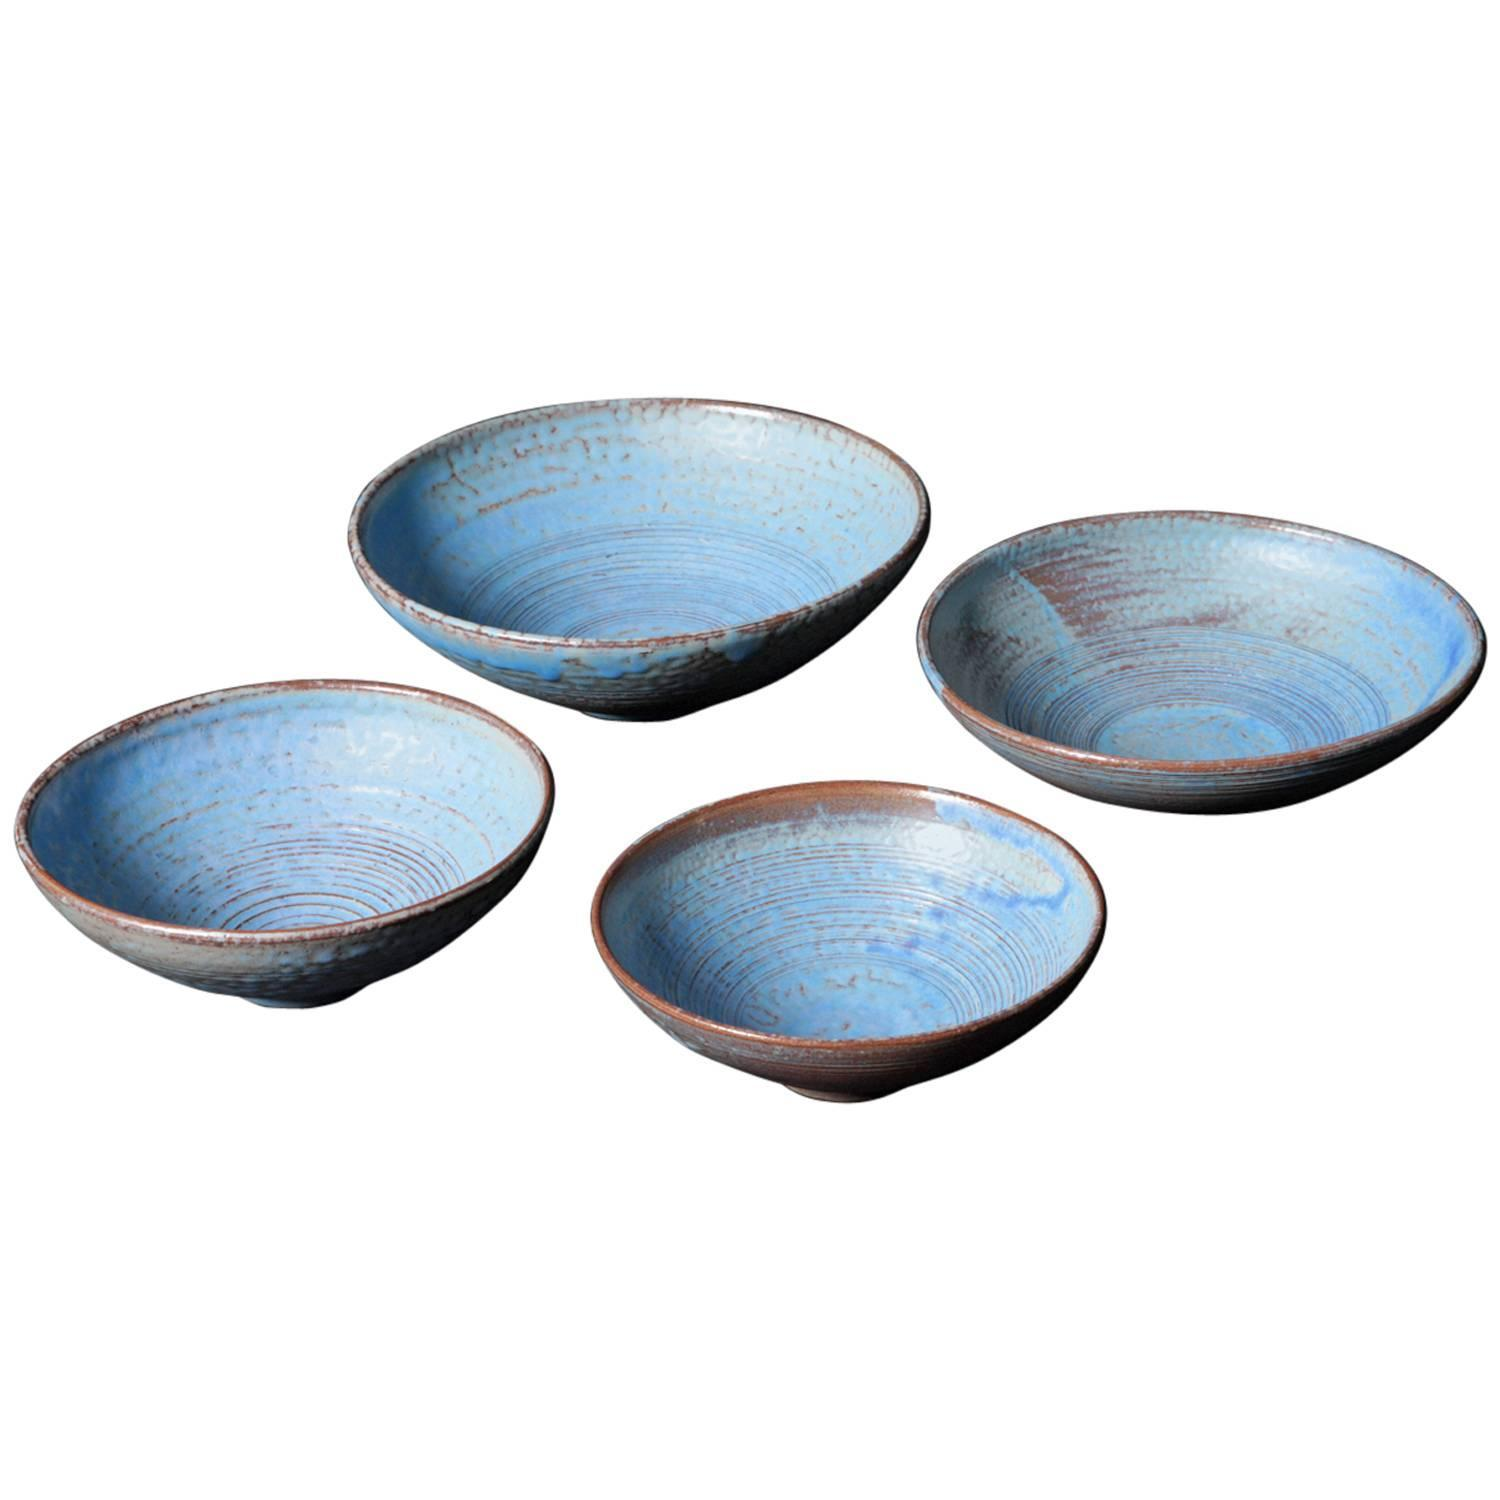 Set of 4 Blue Ceramic Bowls by Susanne Protzmann